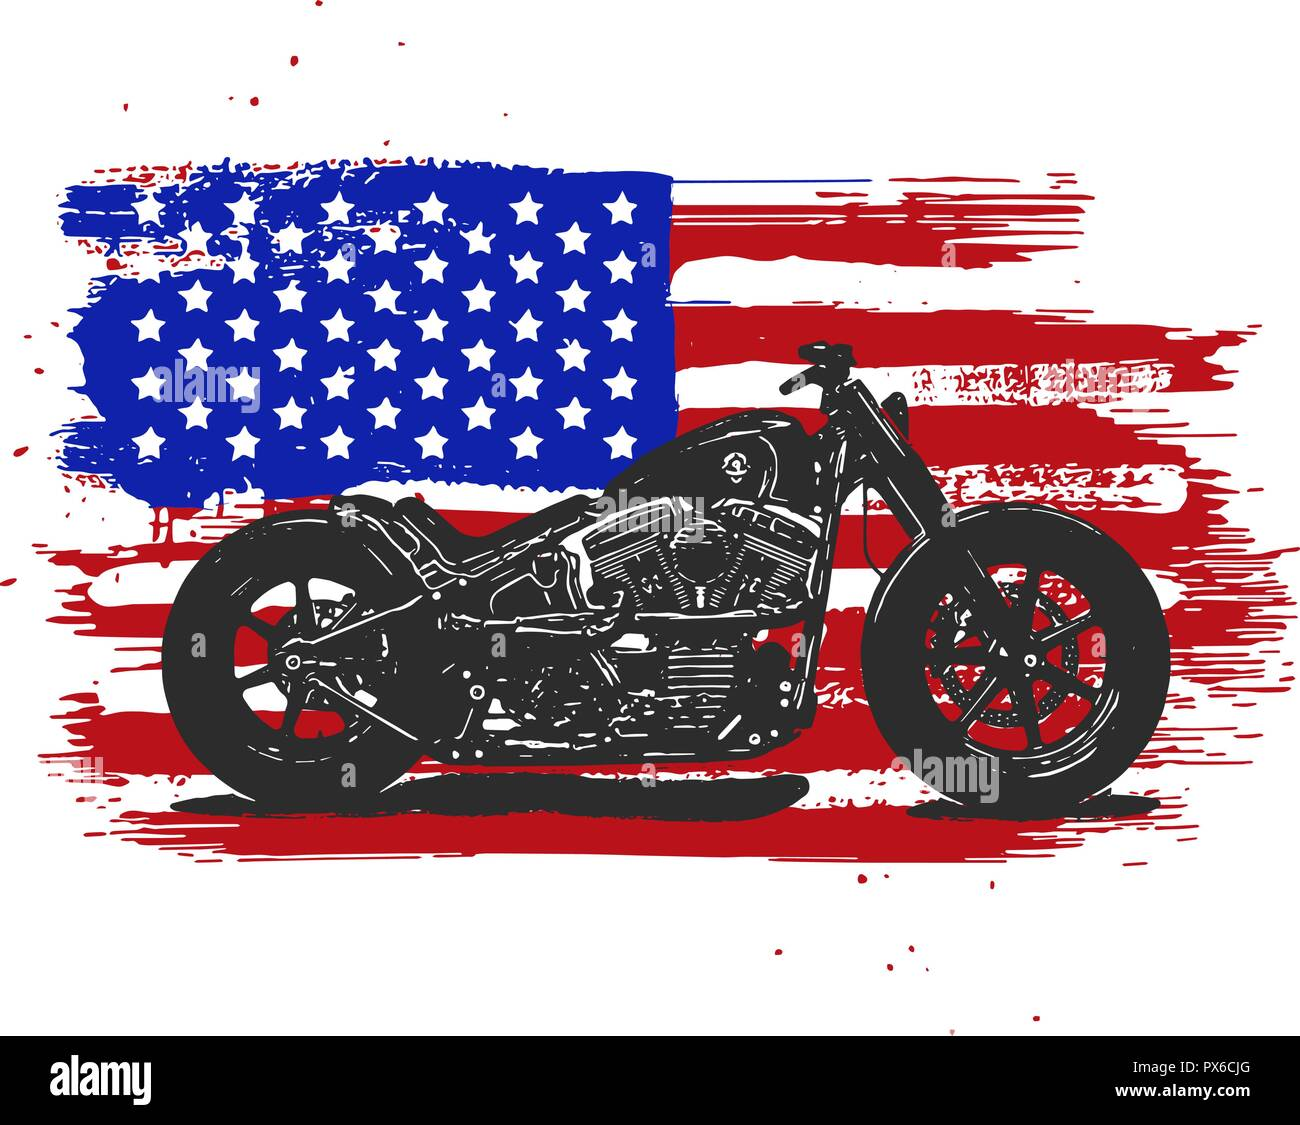 Hand drawn and inked vintage American chopper motorcycle with american flag - Stock Image